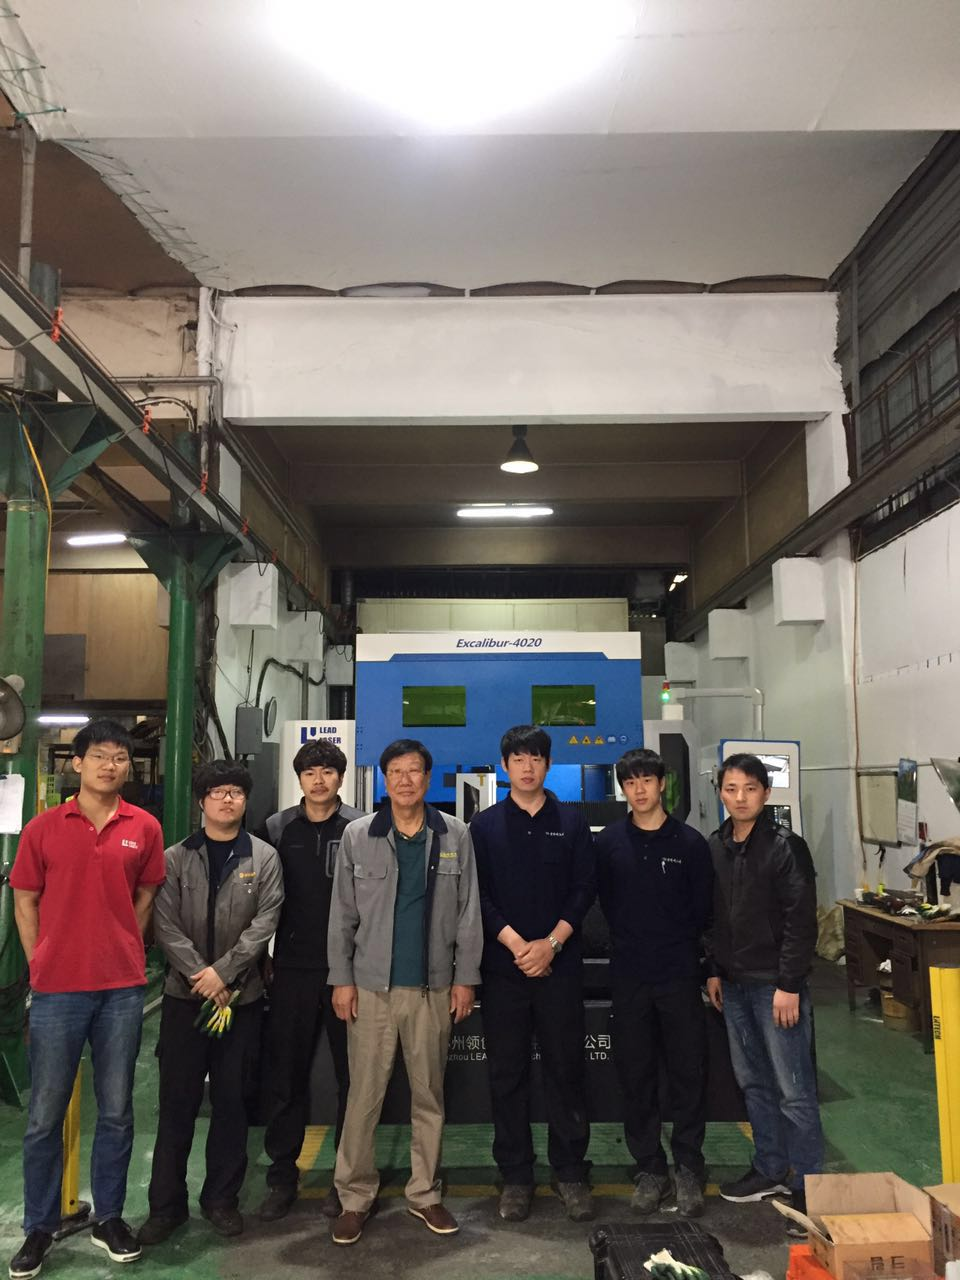 The acceptance of LEAD Laser Excalibur 4020 cutting machine by Korea Customer